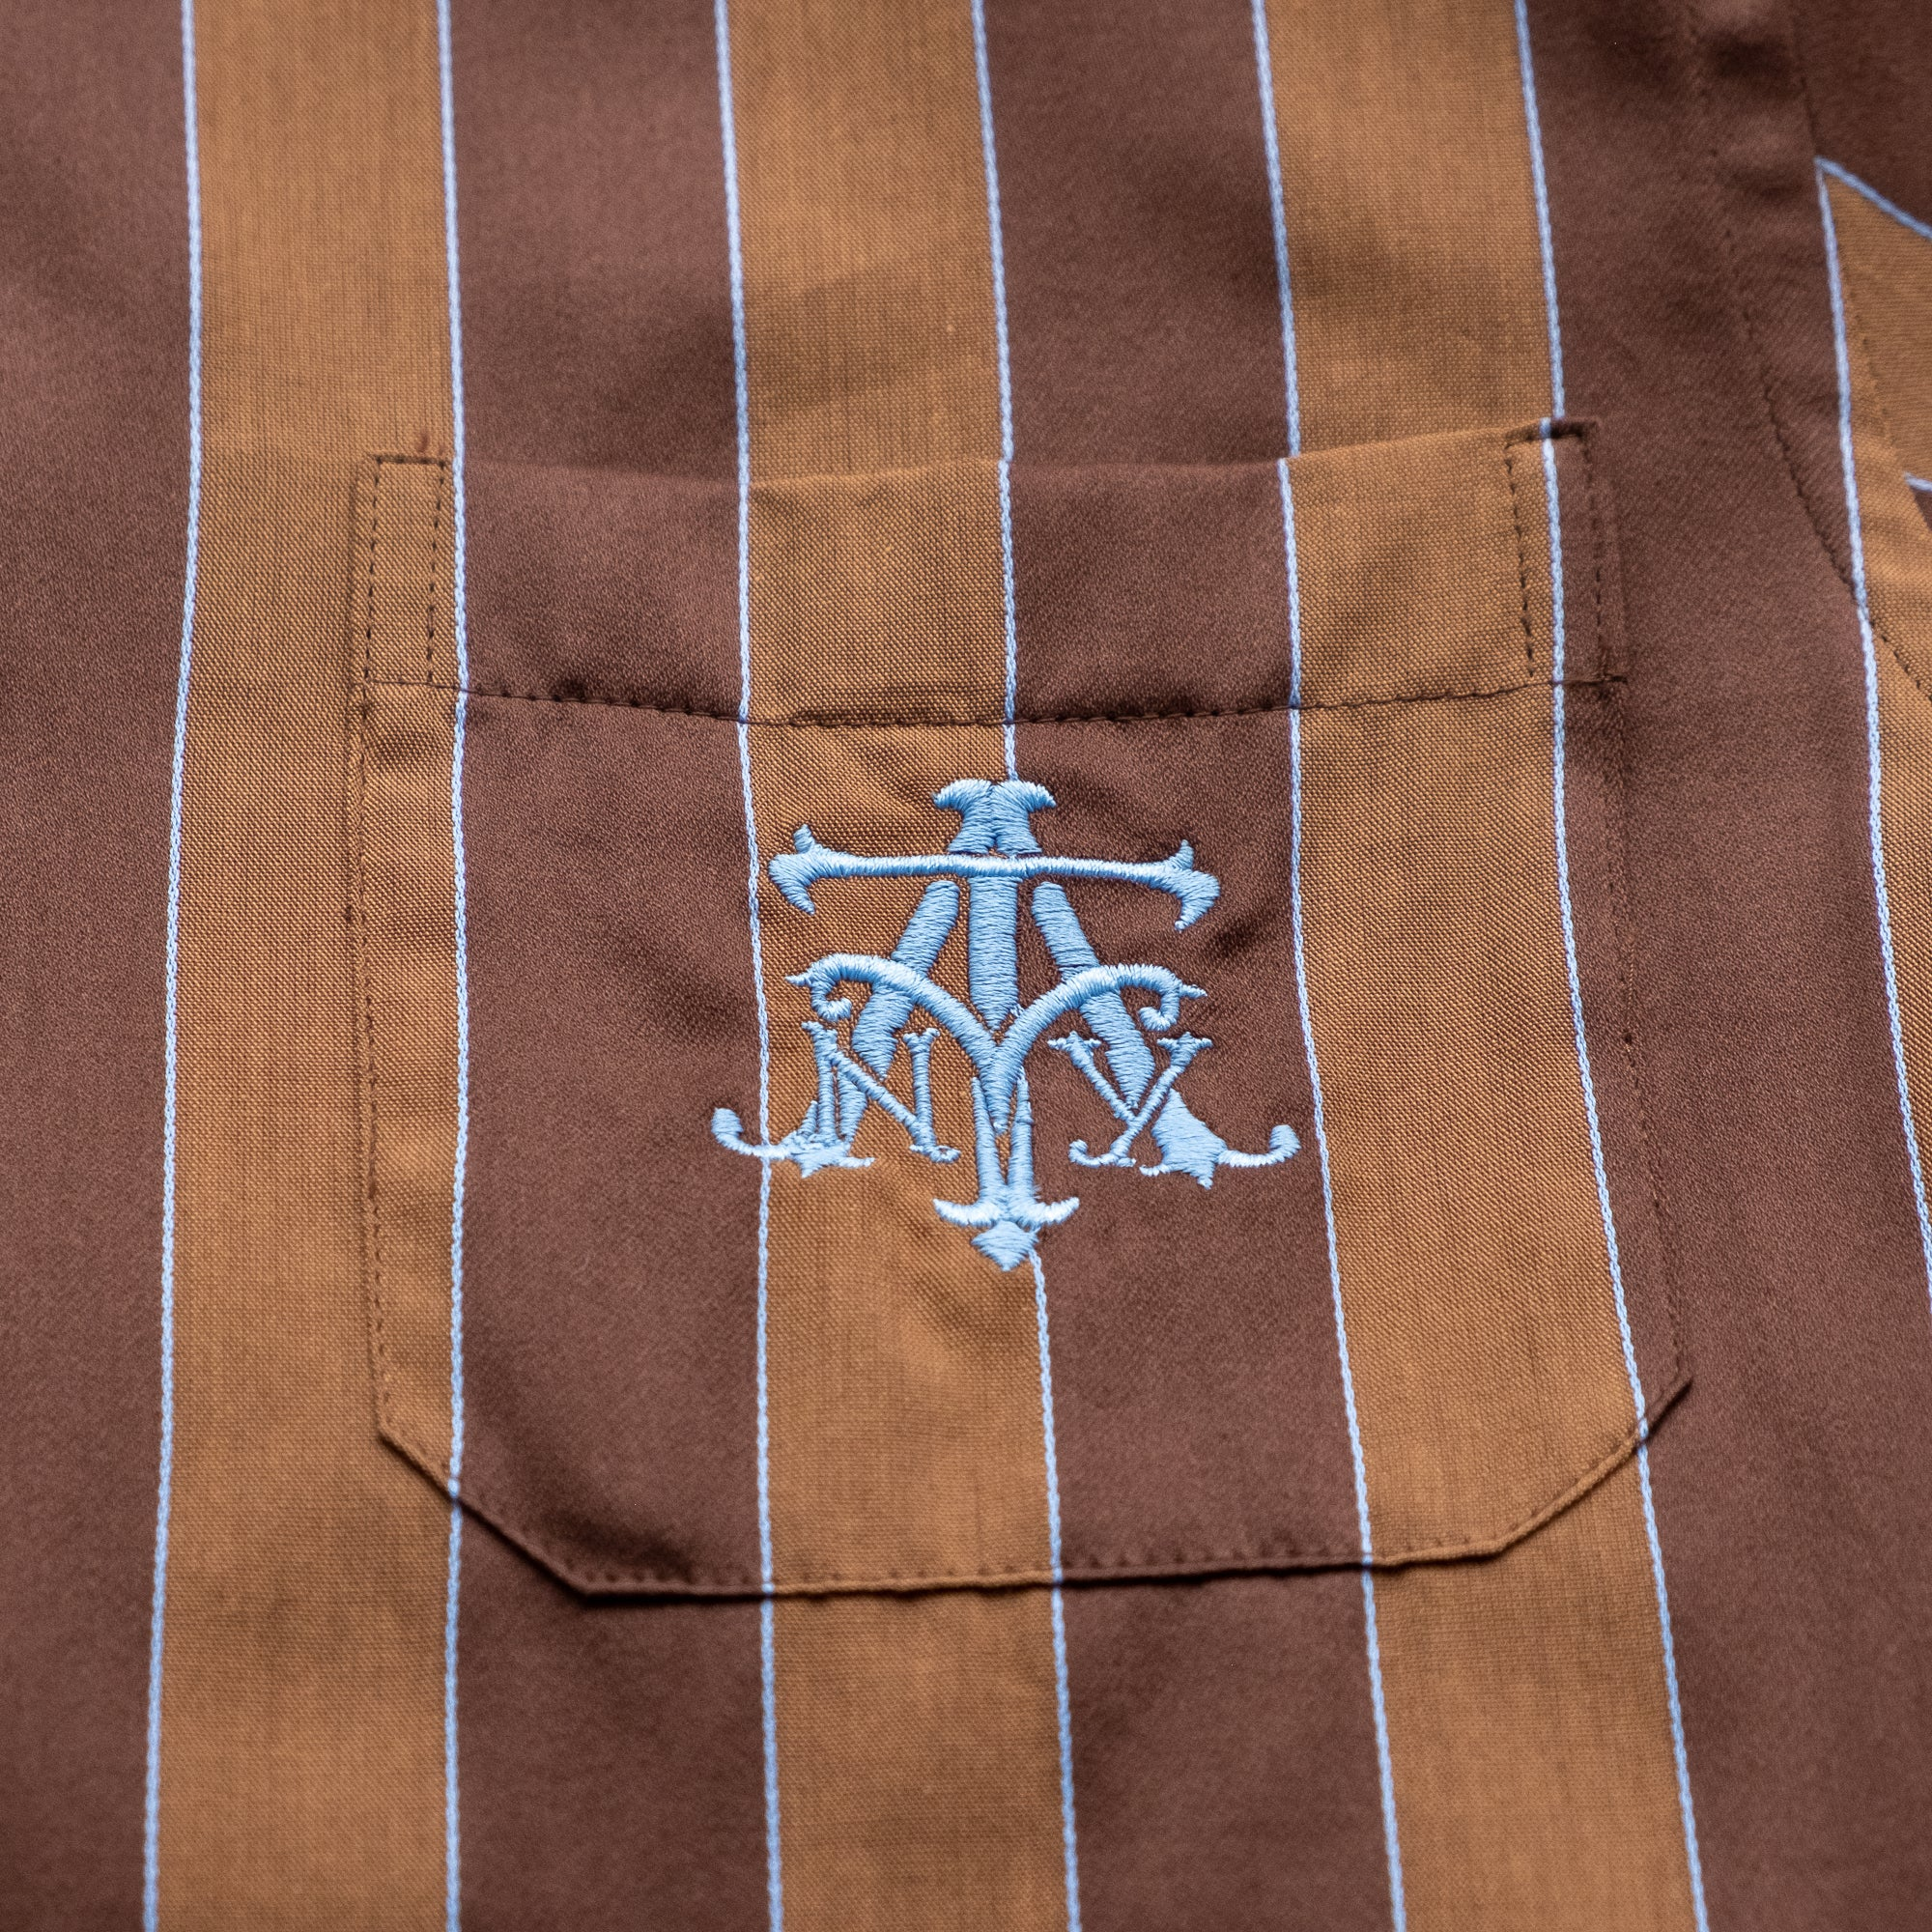 The Academy New York Crest PJ shirt in brown/blue close up of blue embroidered crest.